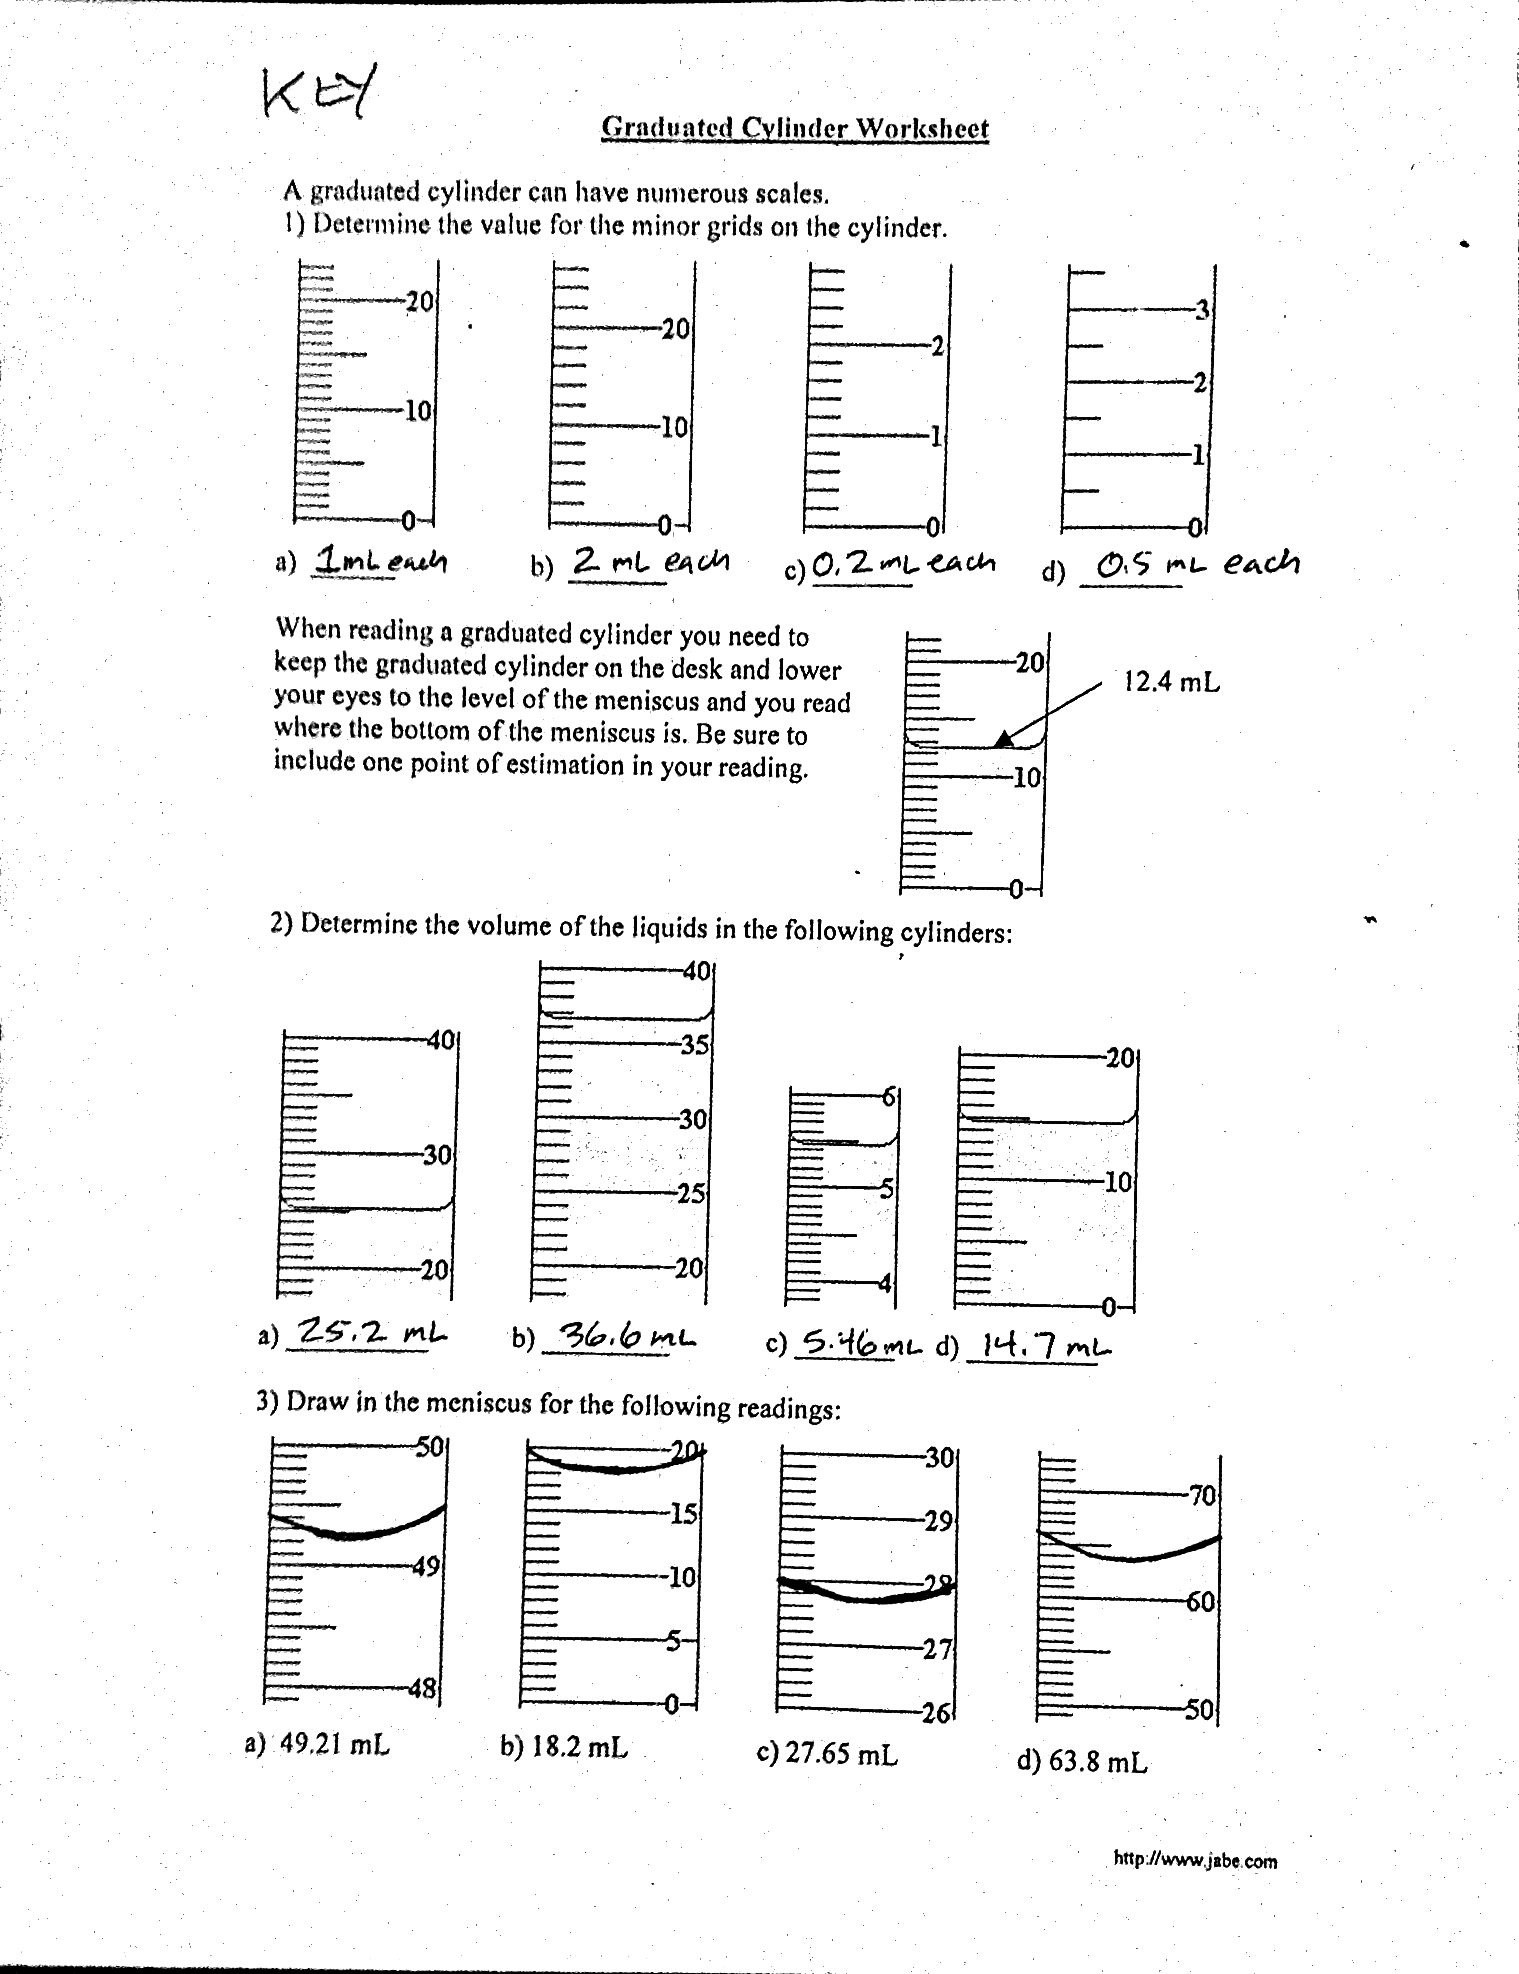 Reading A Graduated Cylinder Worksheet Measurement Mass and Volume Mr Gibbs Science